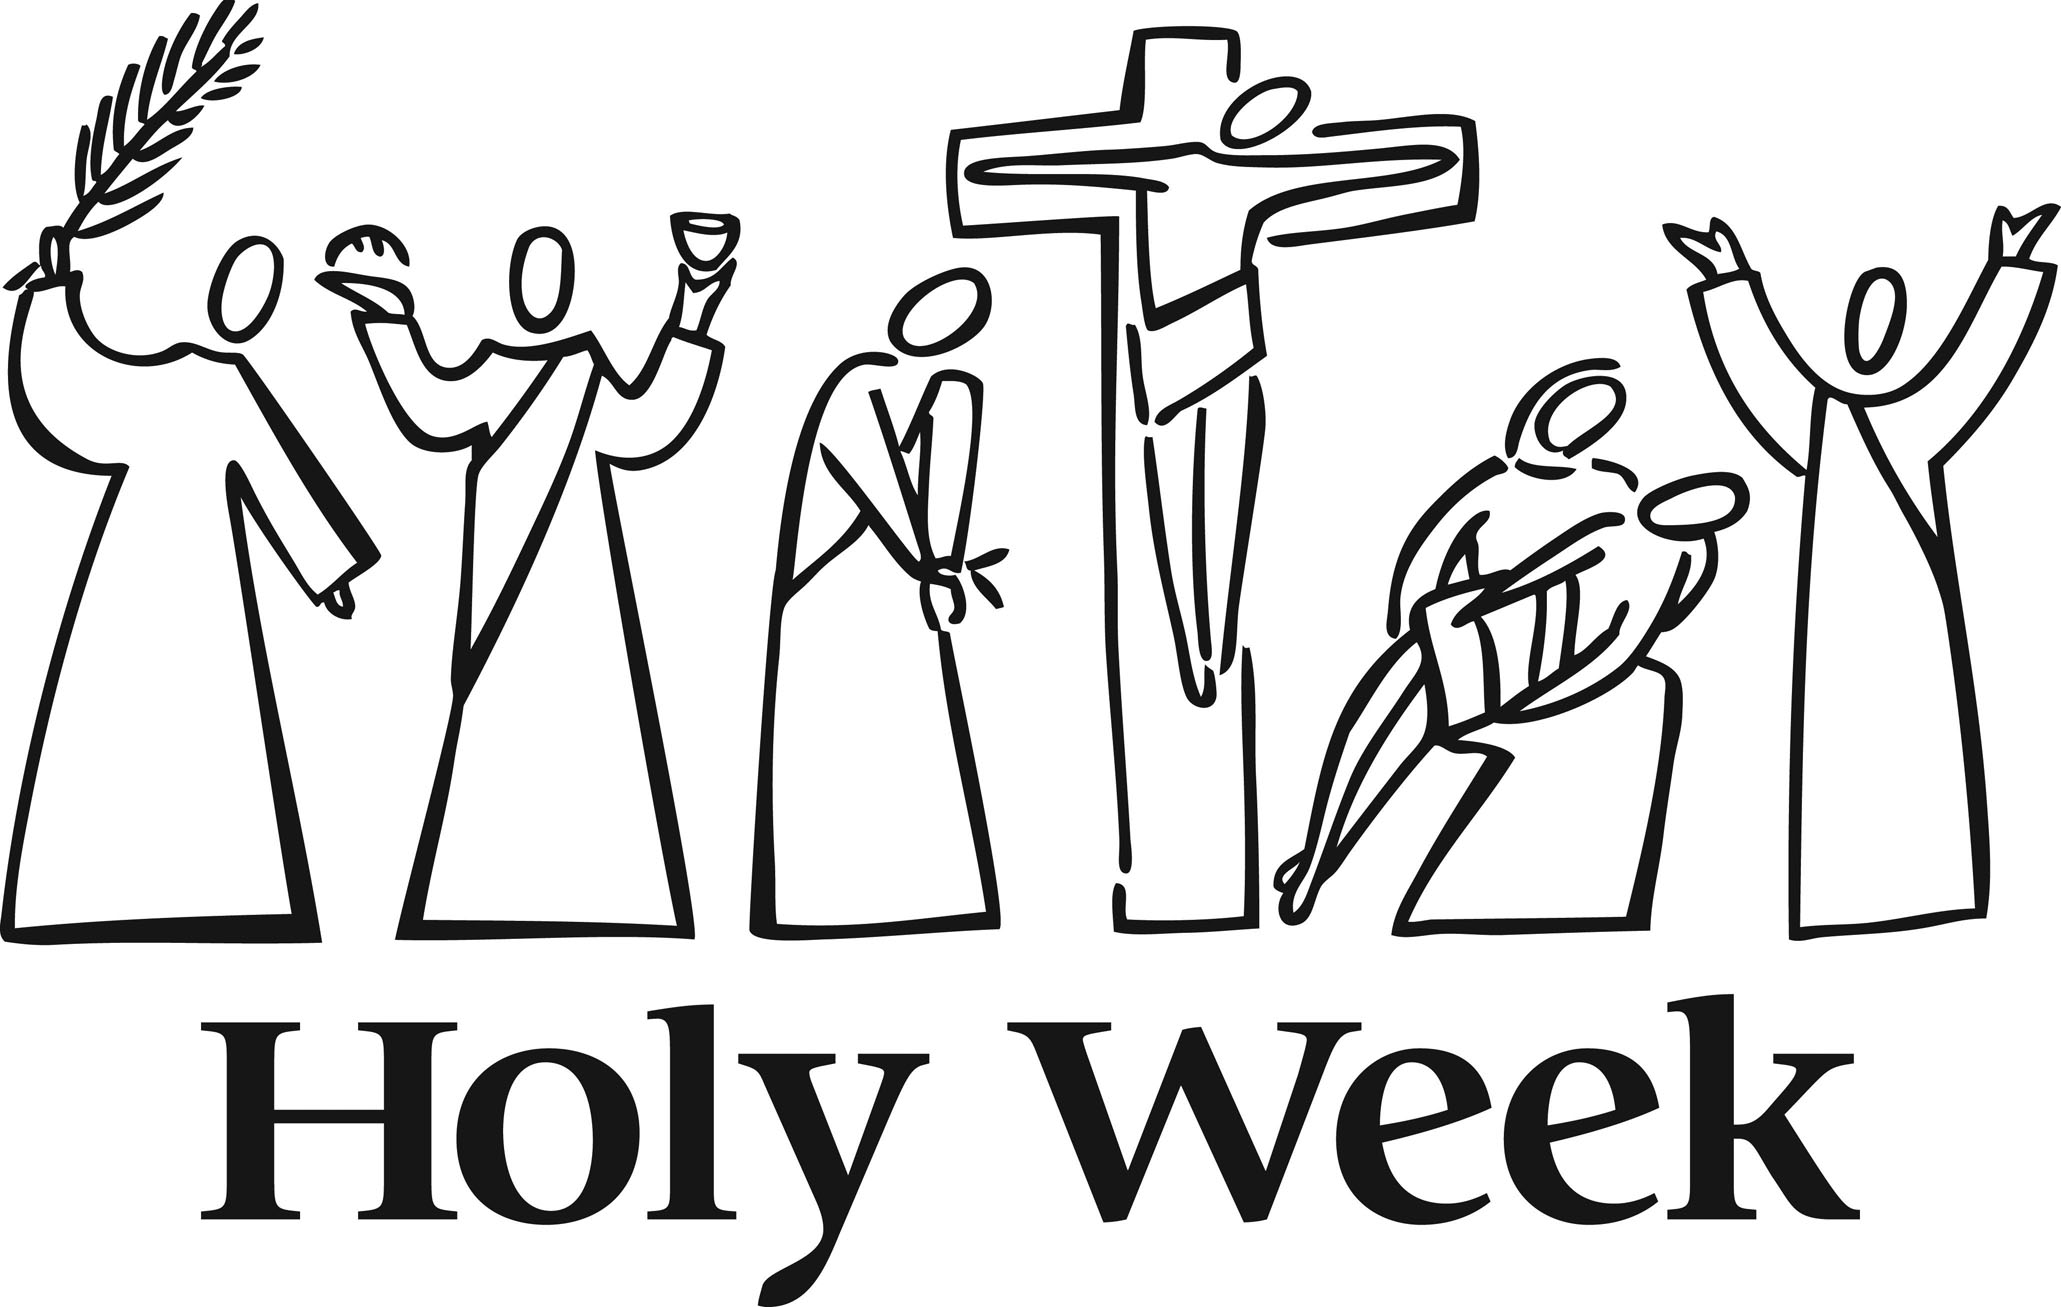 graphic download Free cliparts download clip. Holy week clipart.